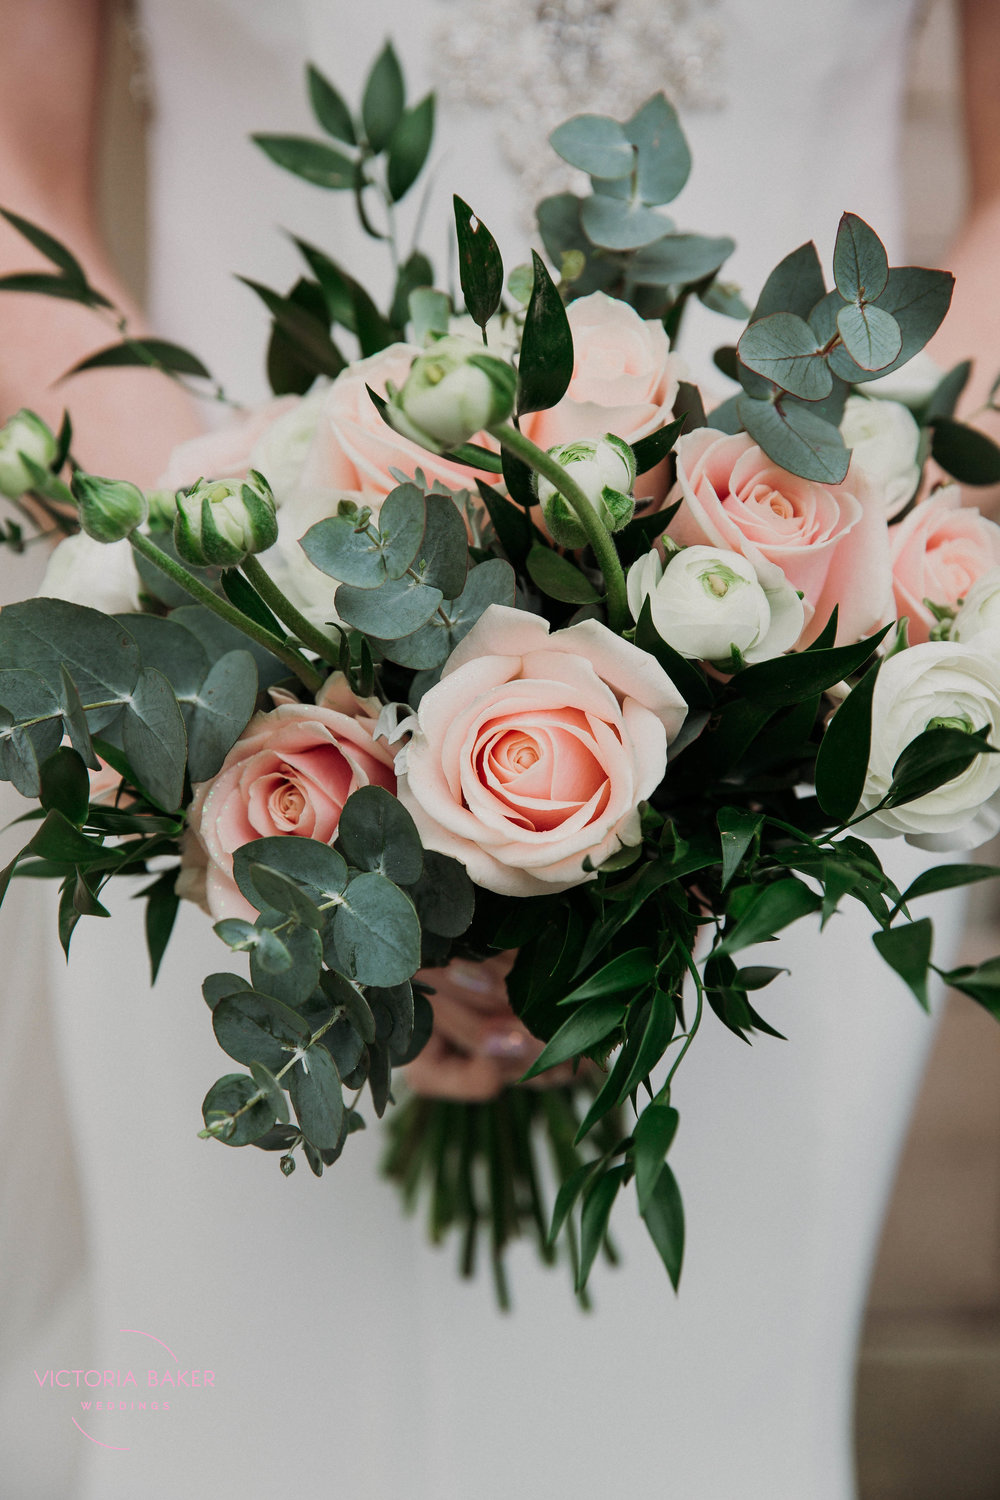 Pink and white wedding flowers harrogate